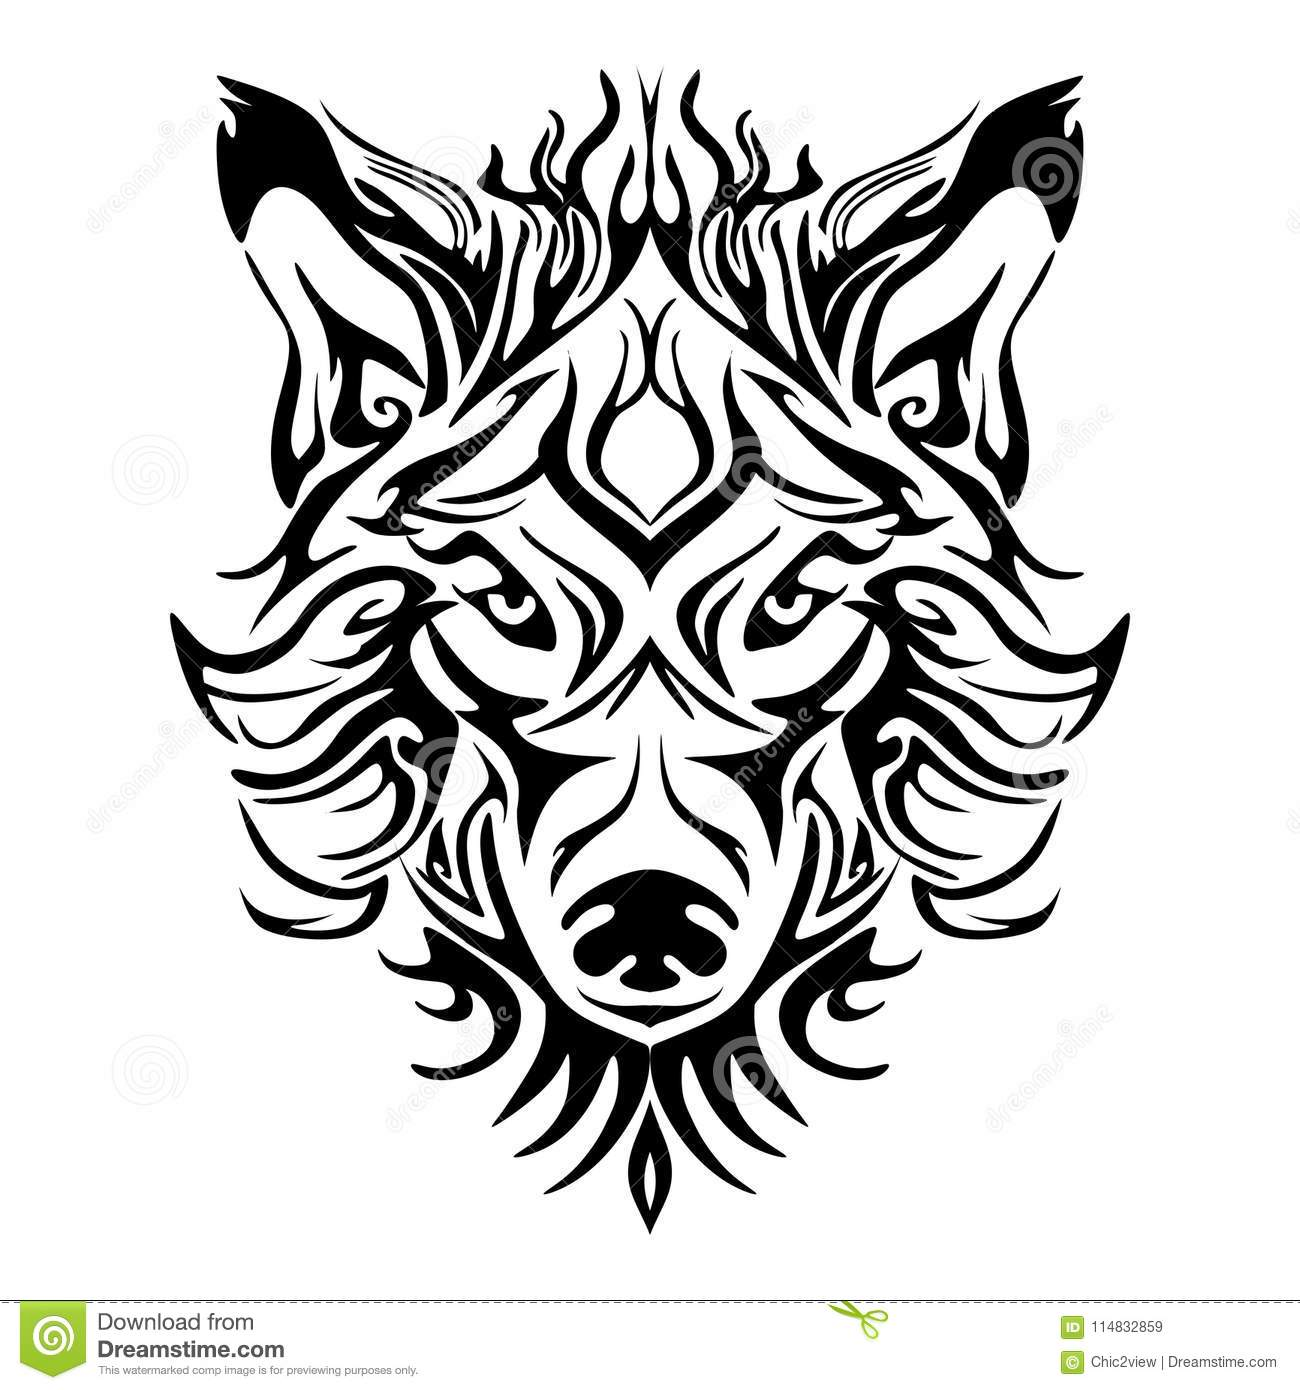 55b656f40 Wolf face head or wolf face design for tribal tattoo style with white  background